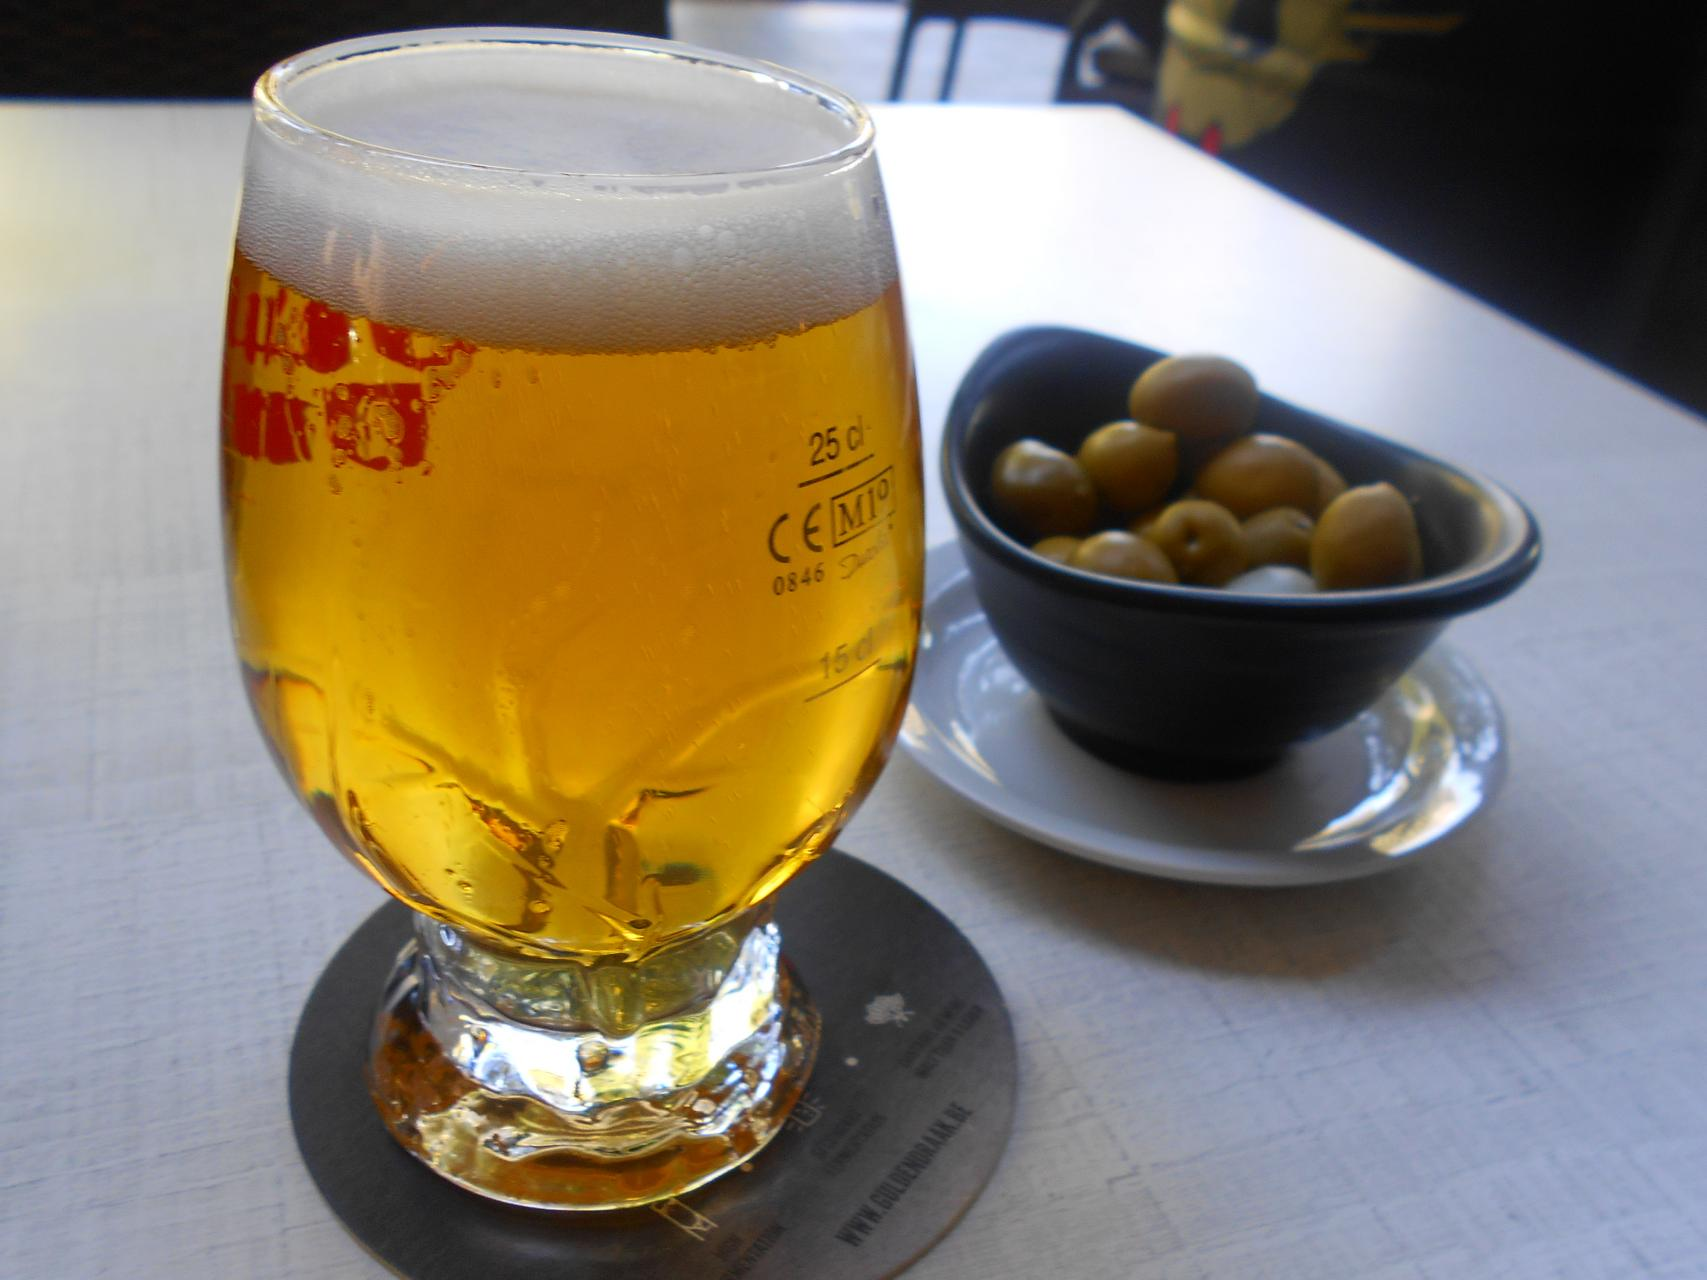 The lager, a fine light beer